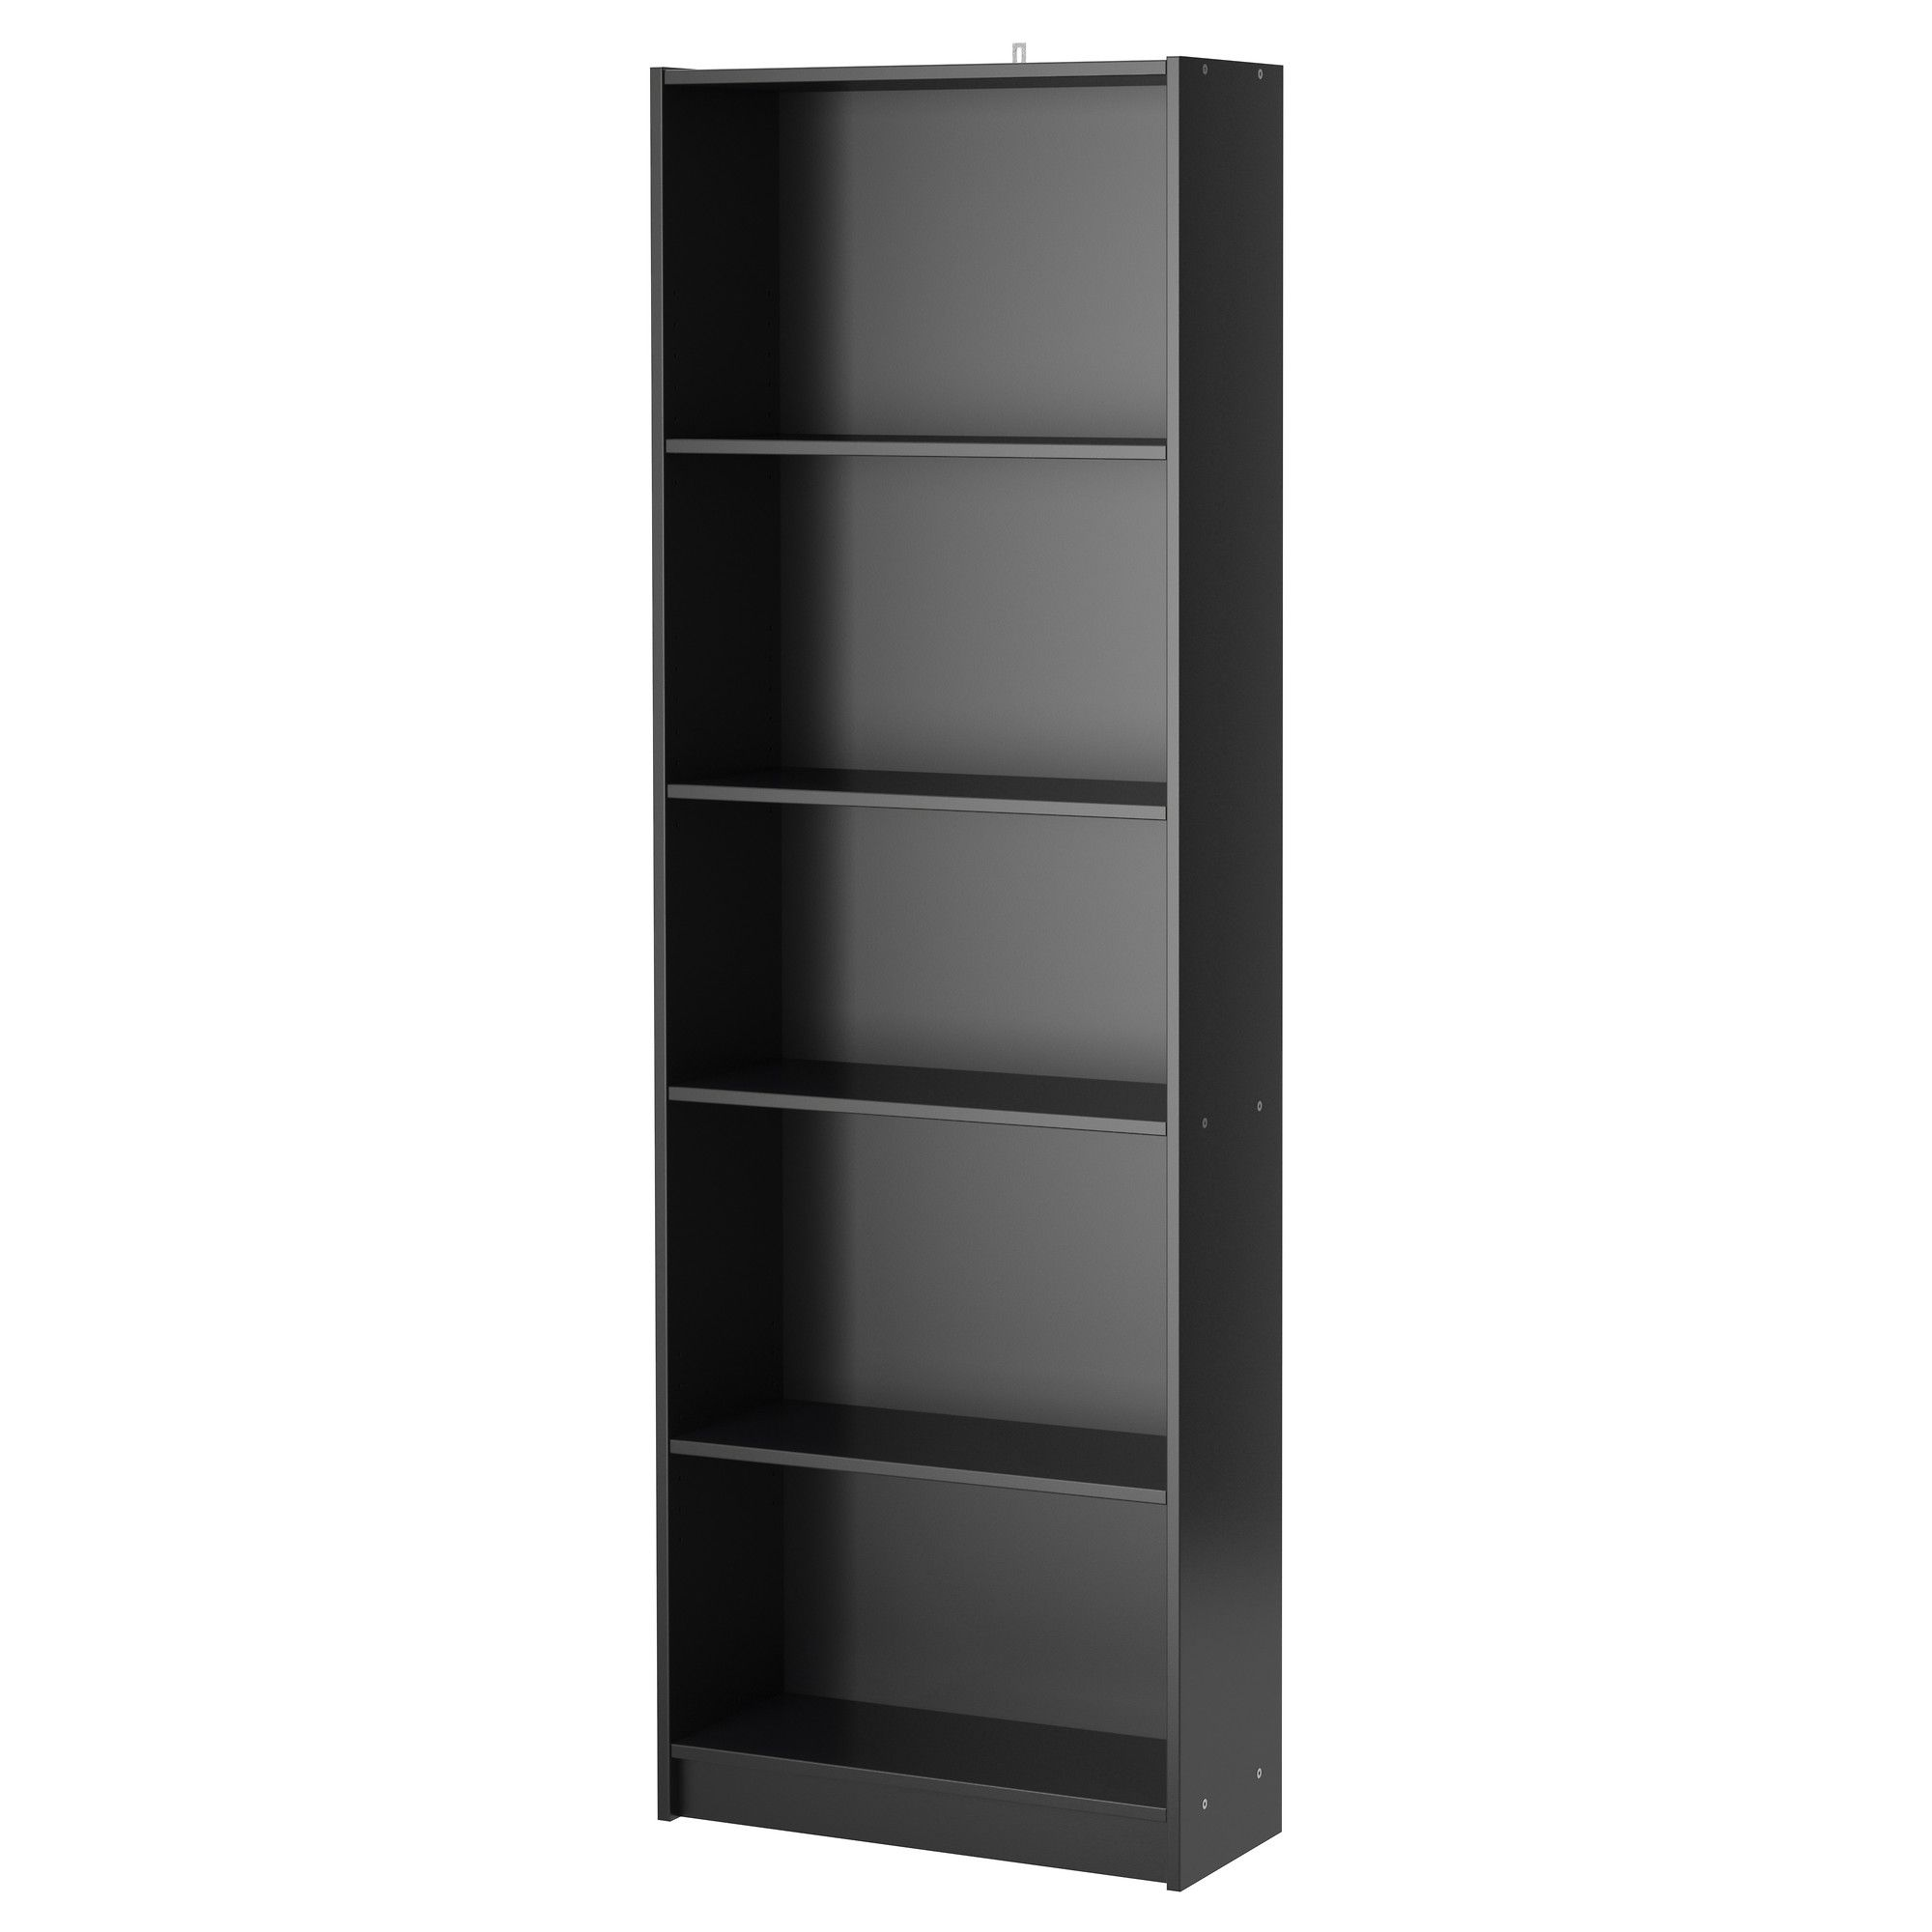 finnby bookcase black 60x180 cm apartments black bookshelf and